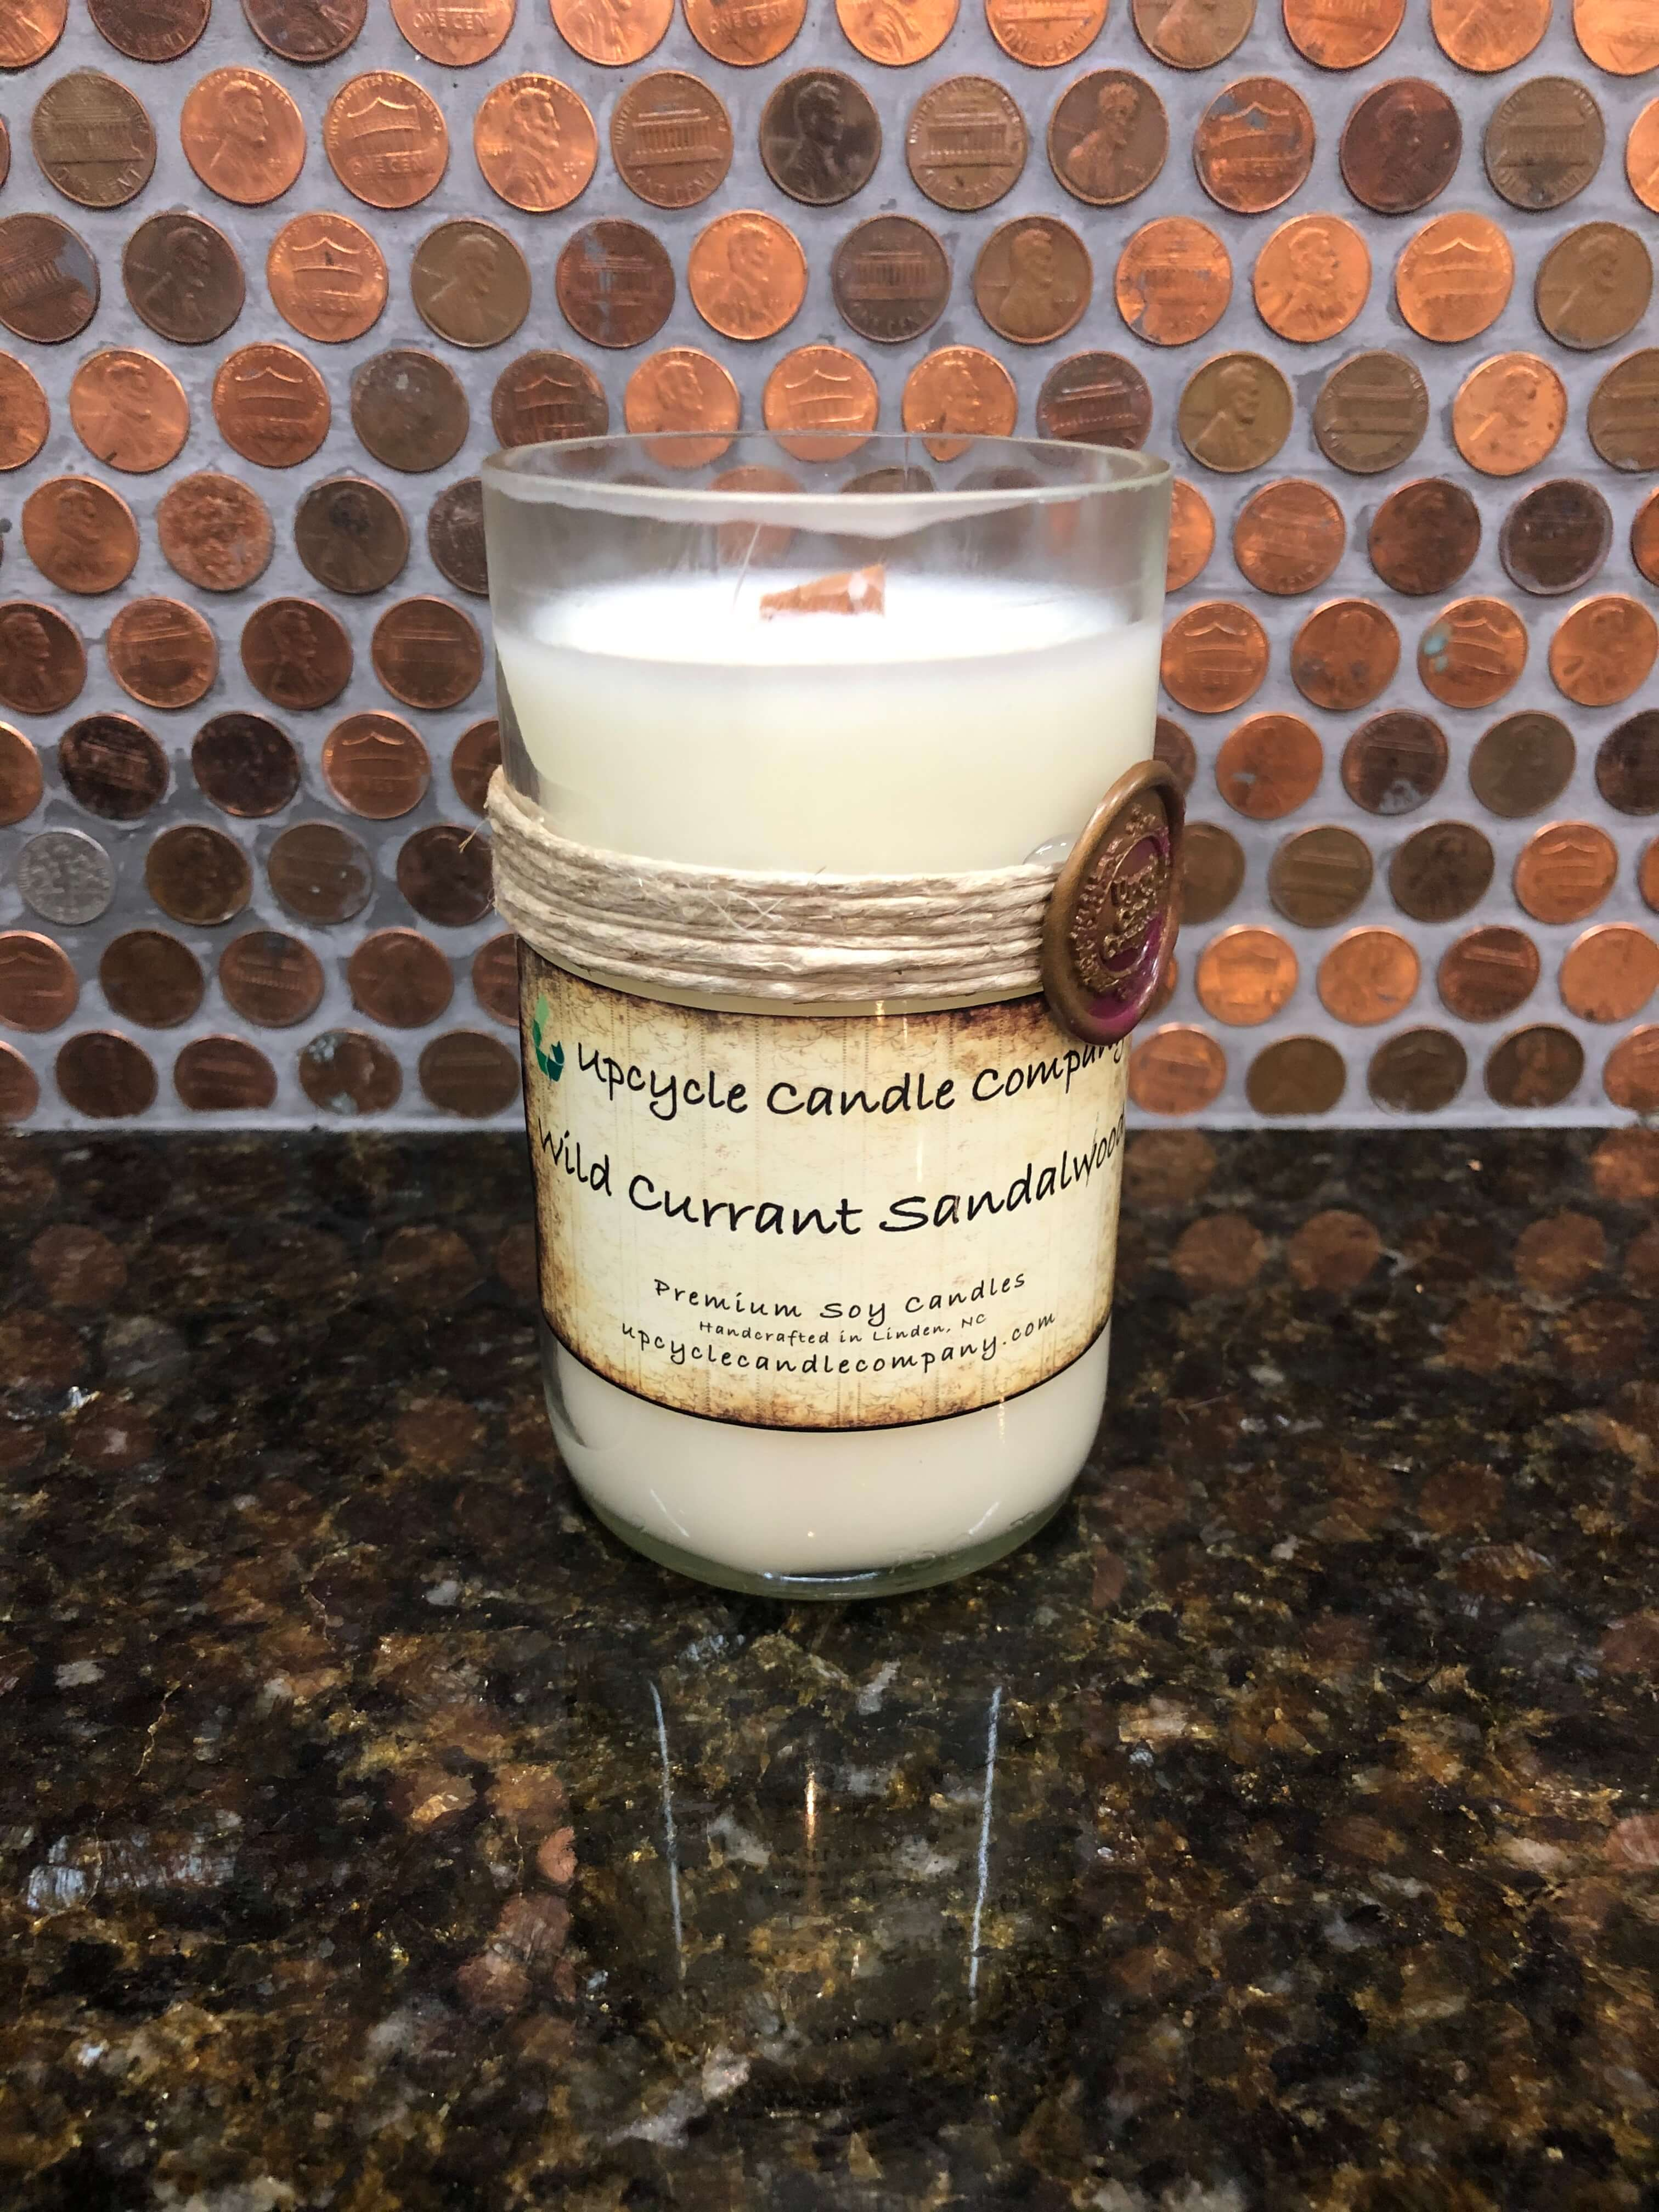 Wild Currant Sandalwood Natural Soy Candle